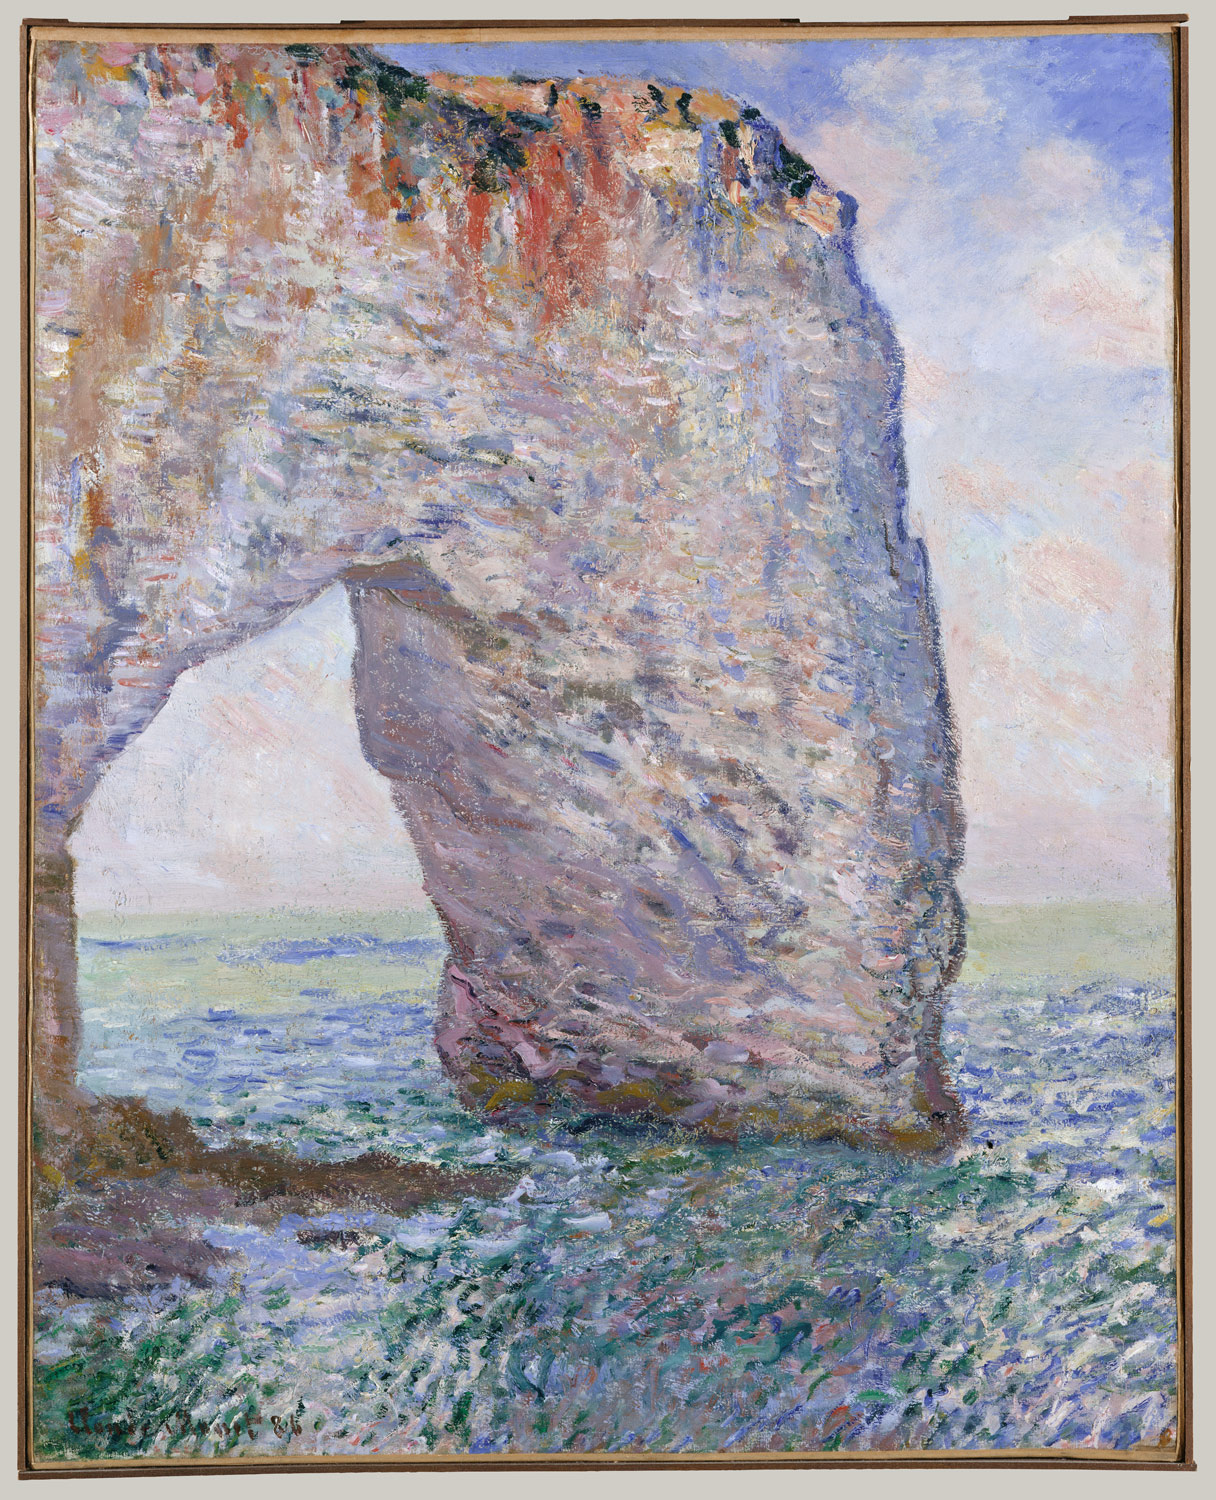 claude monet essay heilbrunn timeline of art the manneporte near eacutetretat